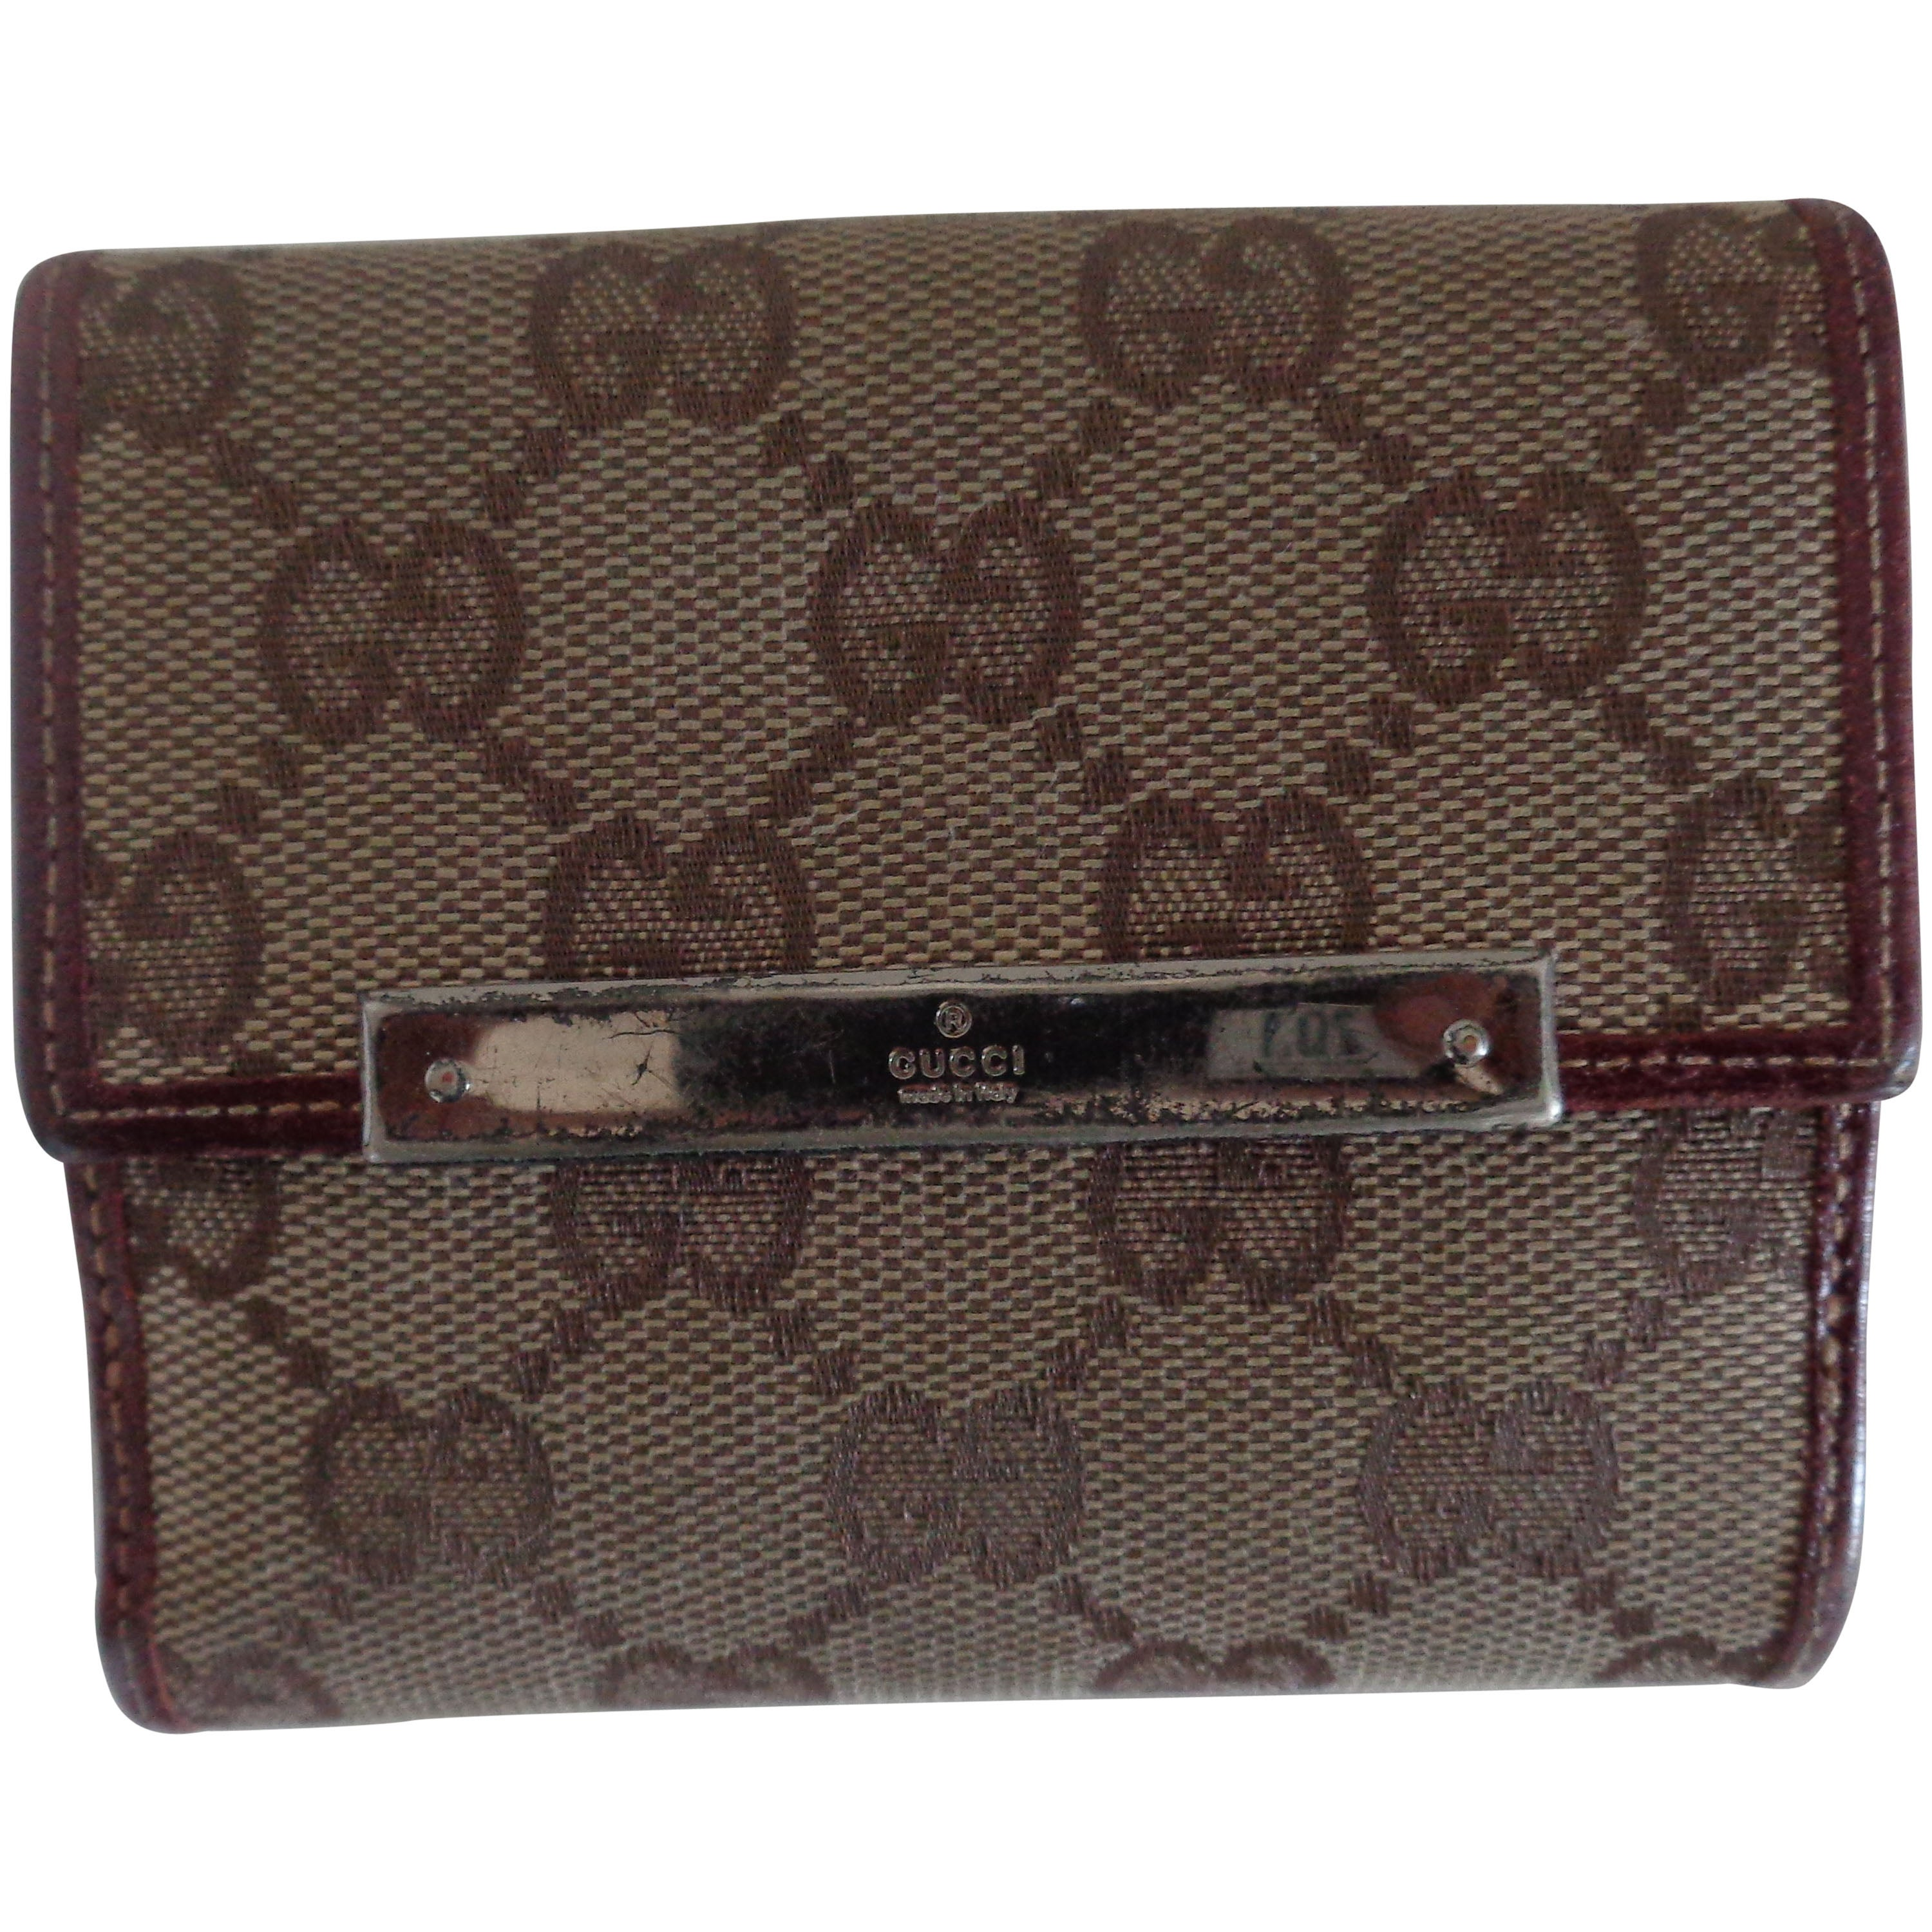 2b0637bc4544 Gucci monogram Canvas Bordeaux Leather Wallet at 1stdibs